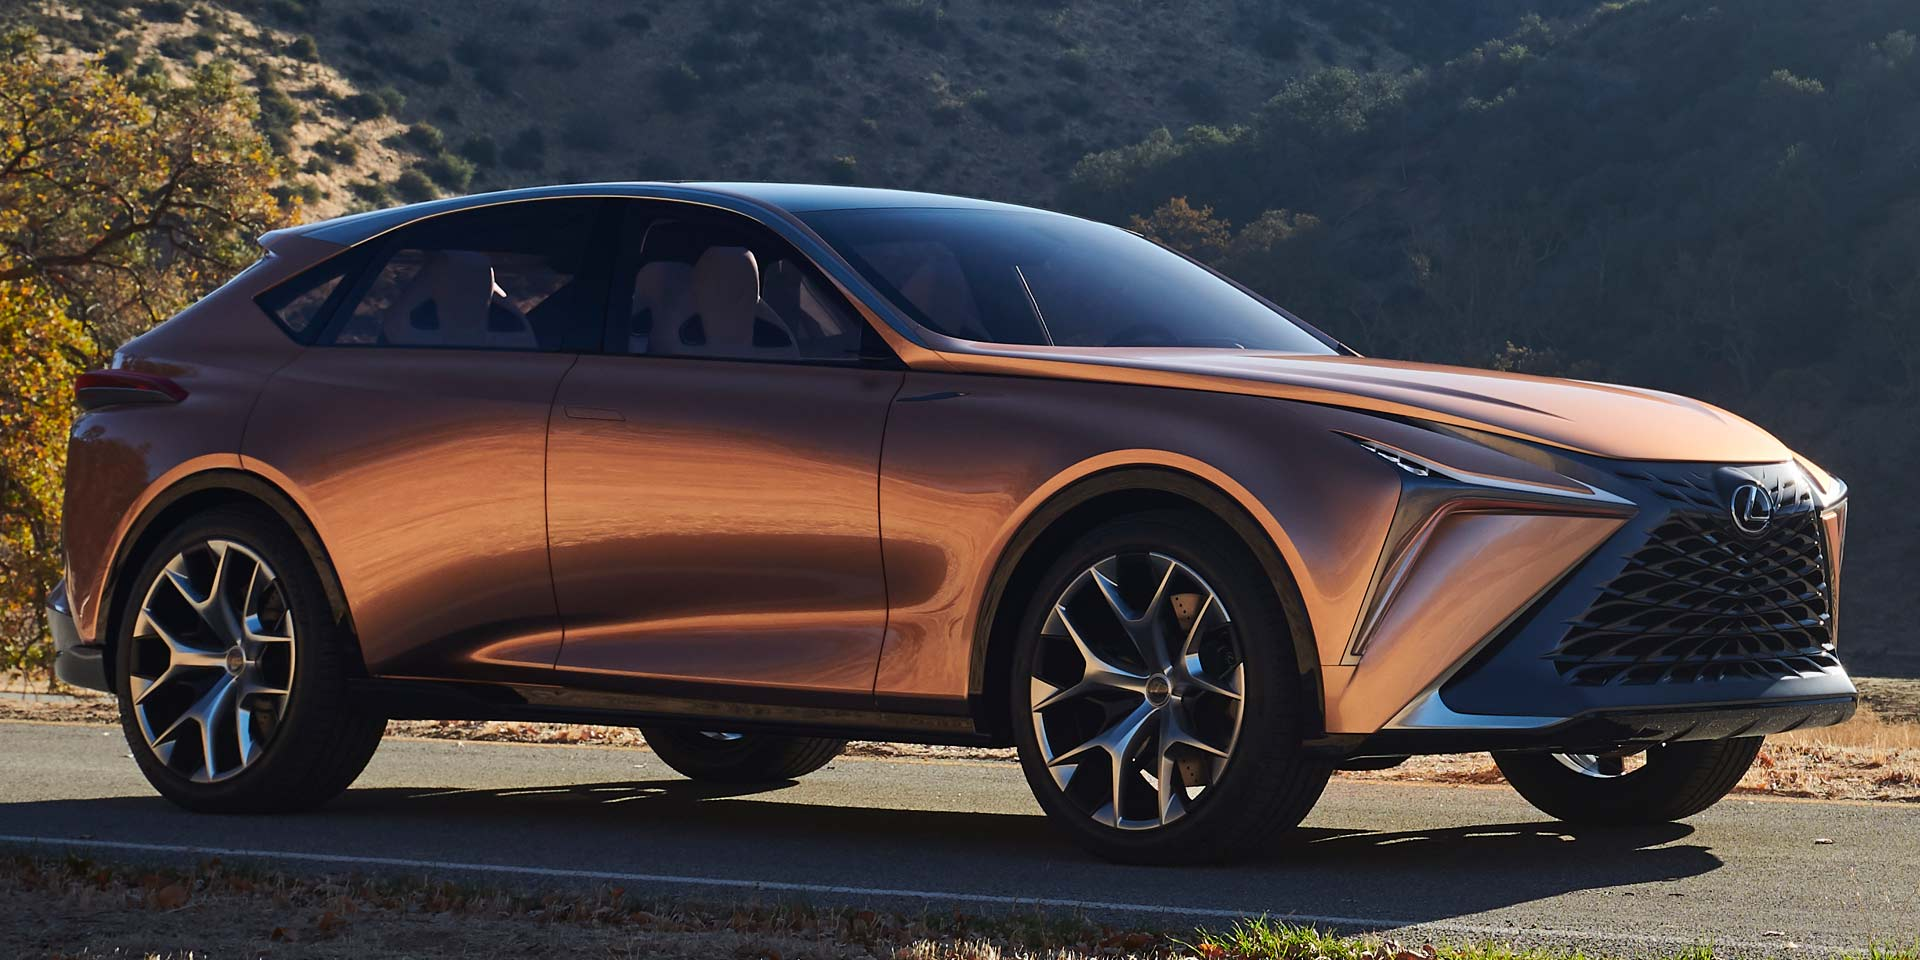 Concept Cars 2019: 2018 - Lexus - LF -1 - Vehicles On Display